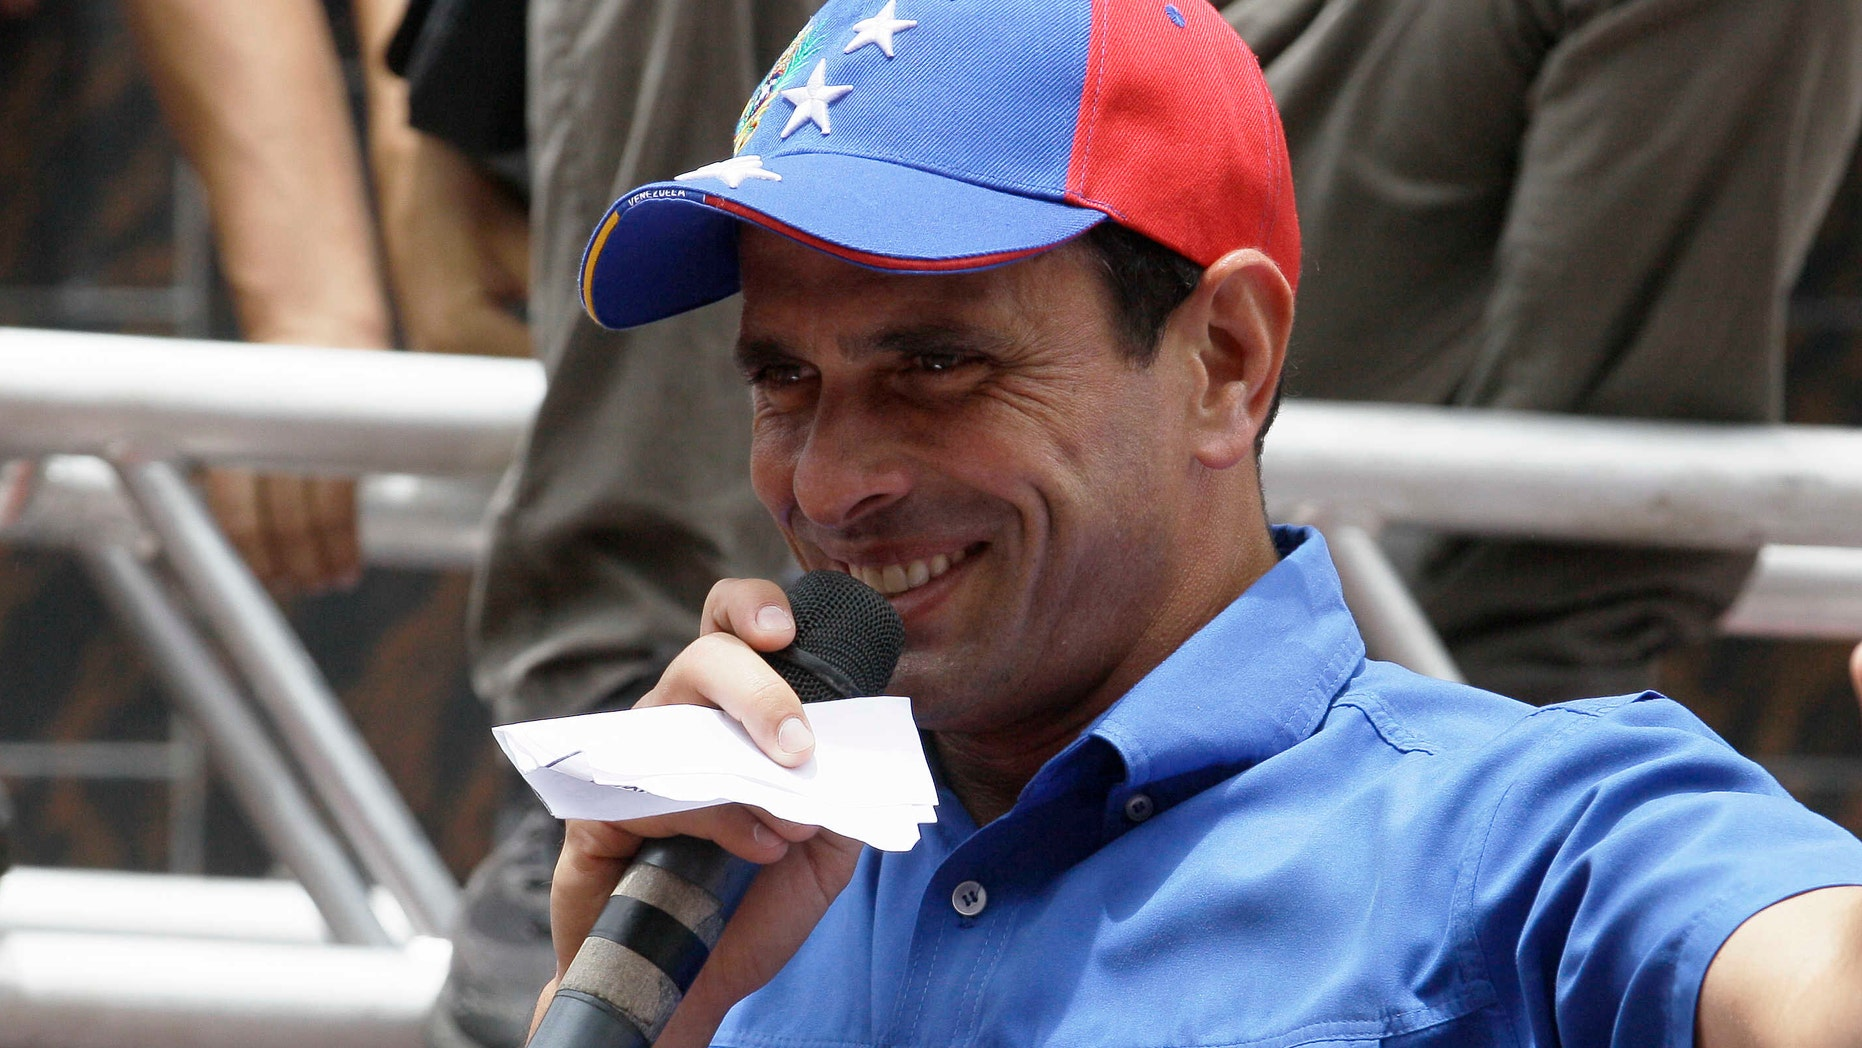 Venezuela's Presidential candidate Henrique Capriles speaks to supporters at a campaign rally in El Junko, near Caracas, Venezuela, Friday, Aug. 3, 2012. Venezuela's presidential election is scheduled for Oct. 7.(AP Photo/Fernando Llano)